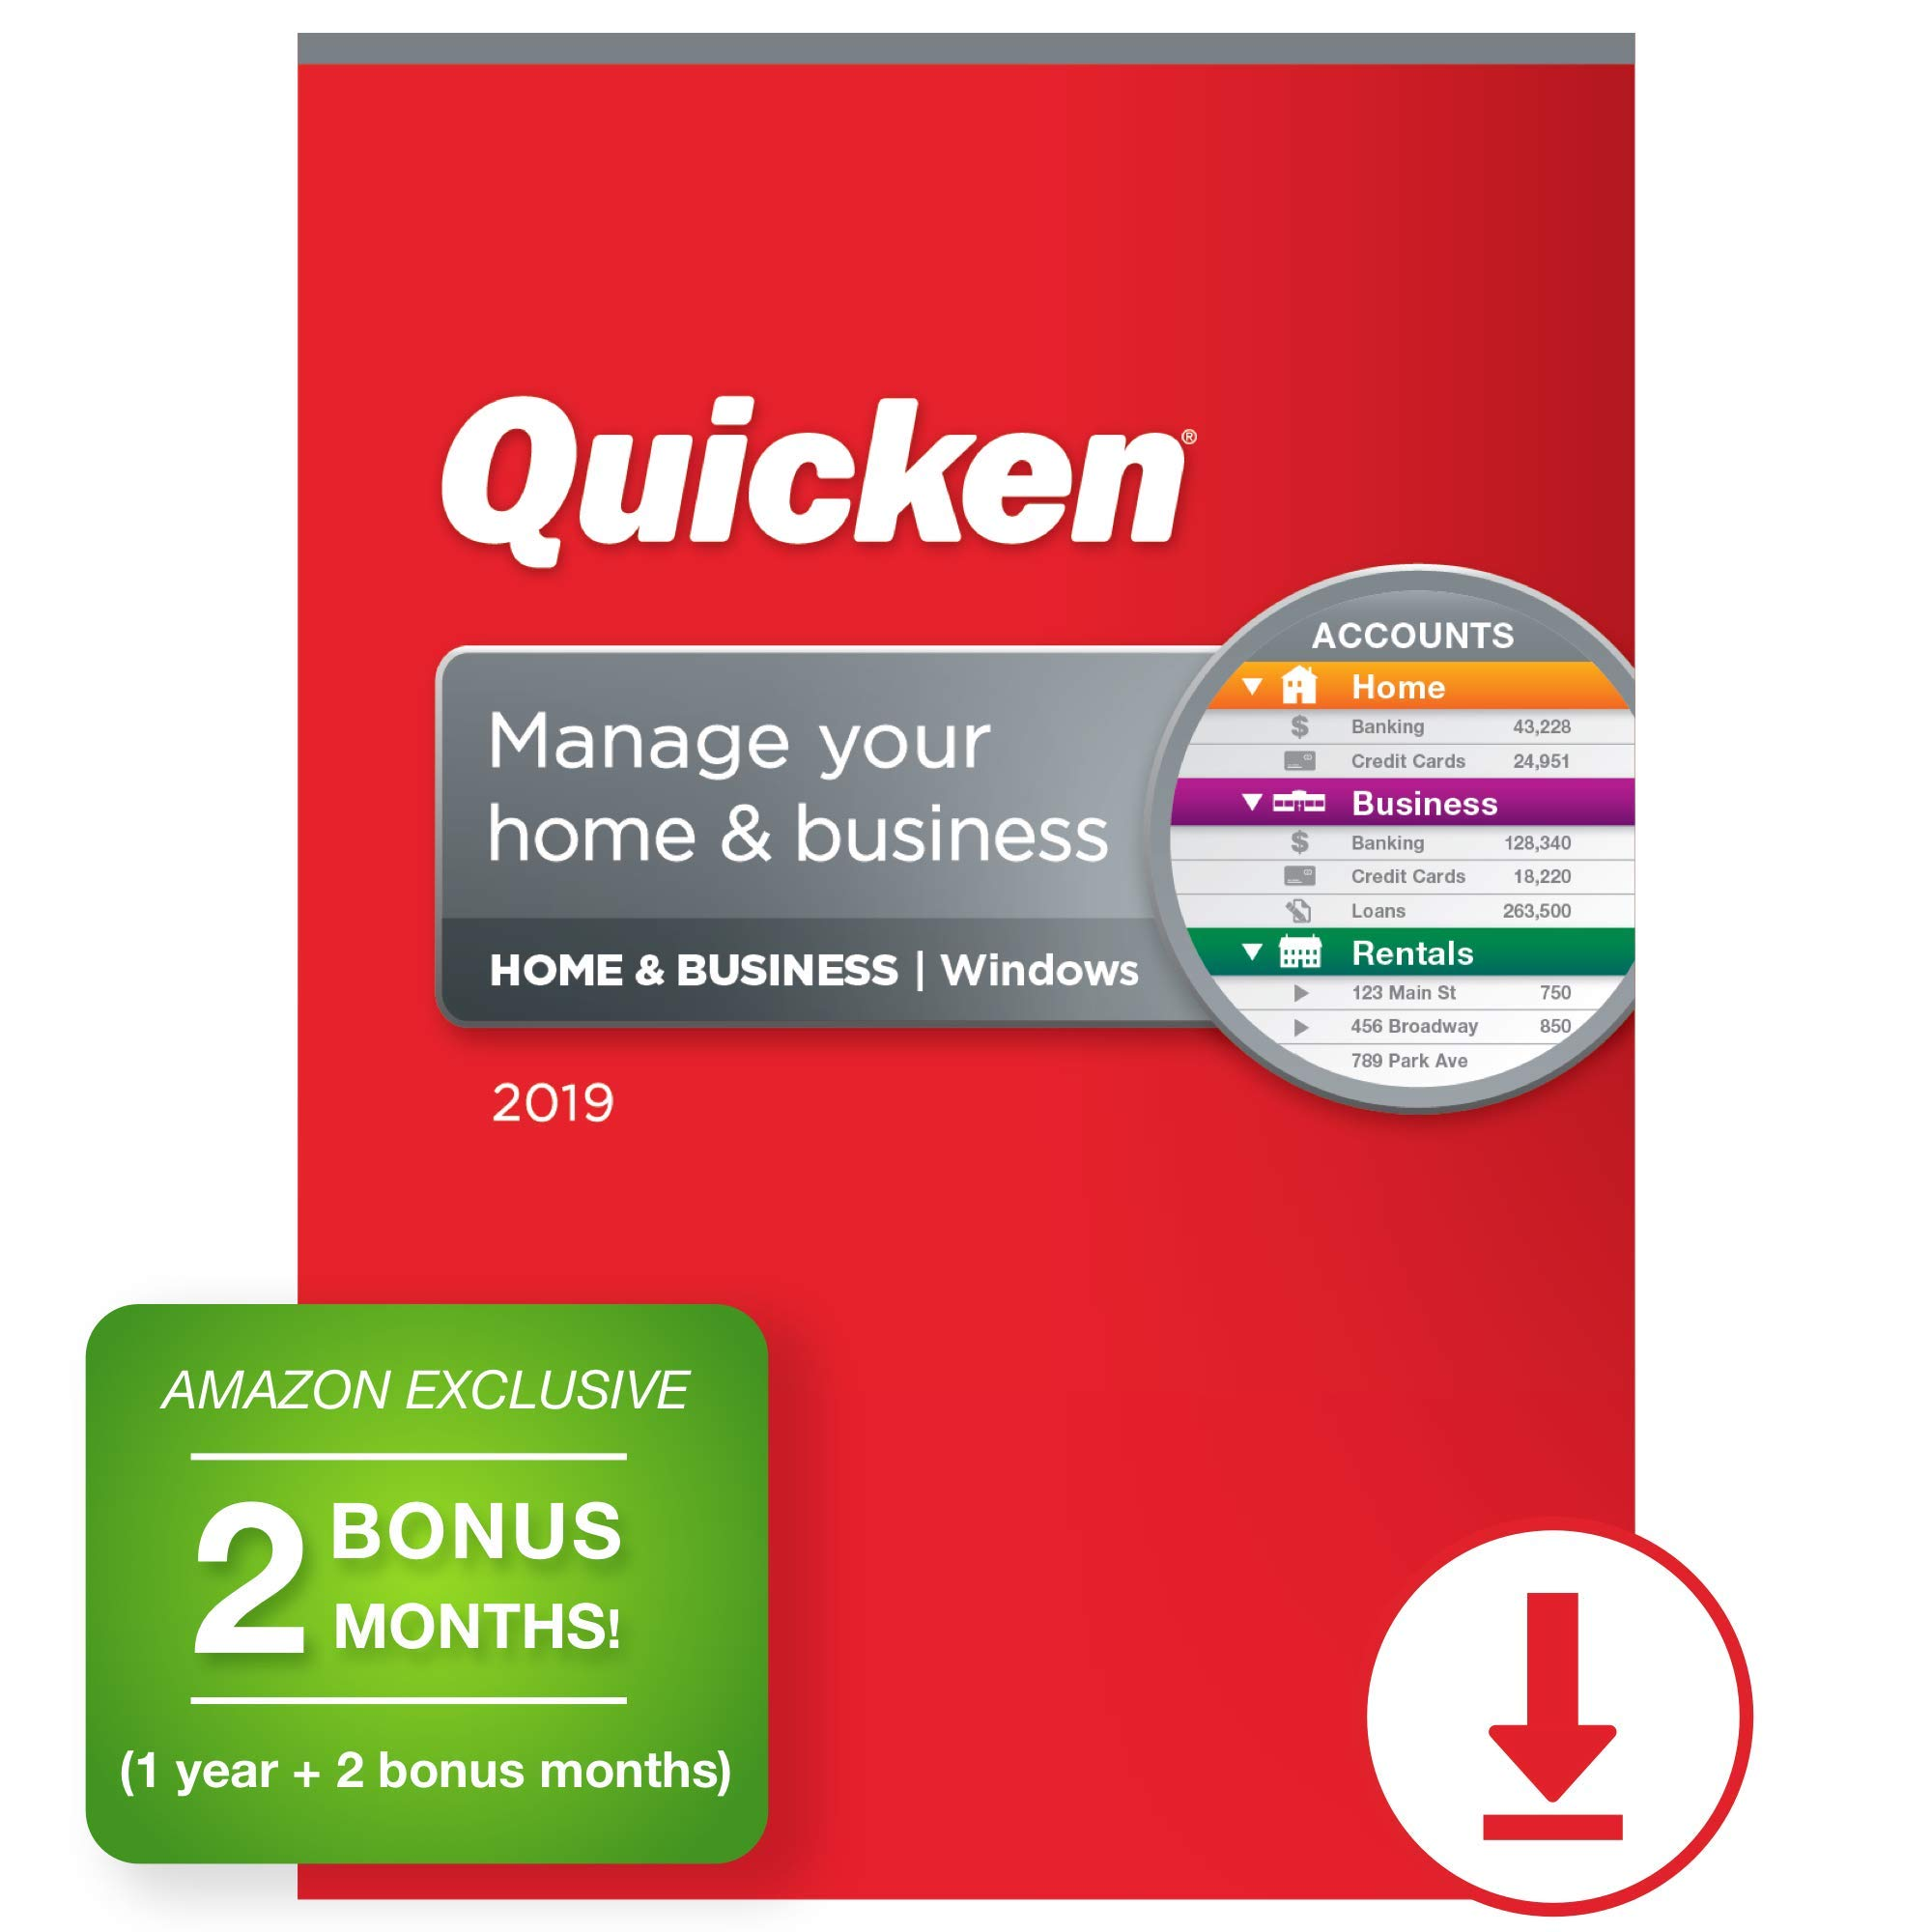 Quicken Home & Business 2019 Personal Finance & Small Business Software [PC Download] 1-Year Subscription + 2 Bonus Months [Amazon Exclusive] by Quicken